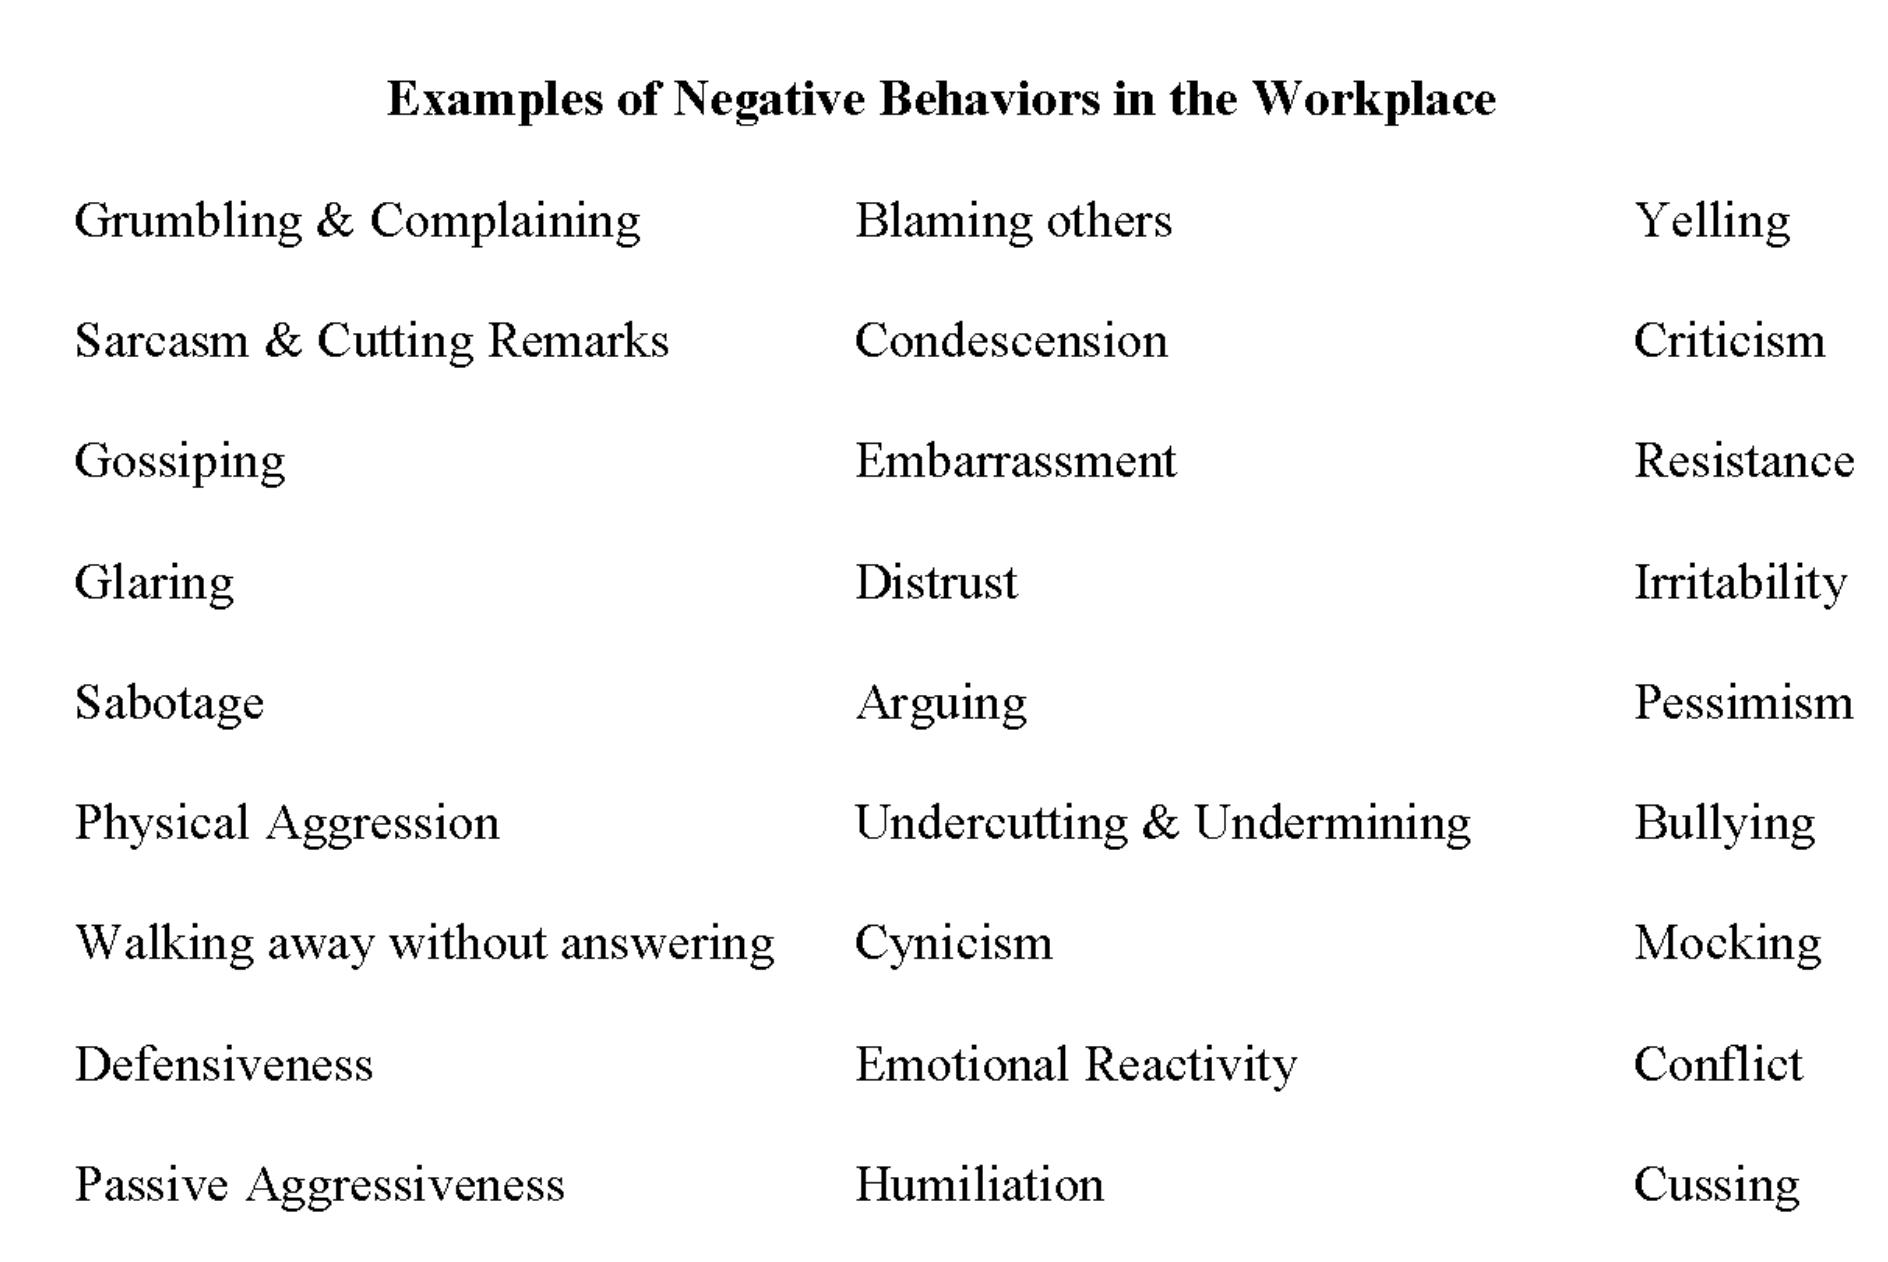 negative behaviors in the workplace